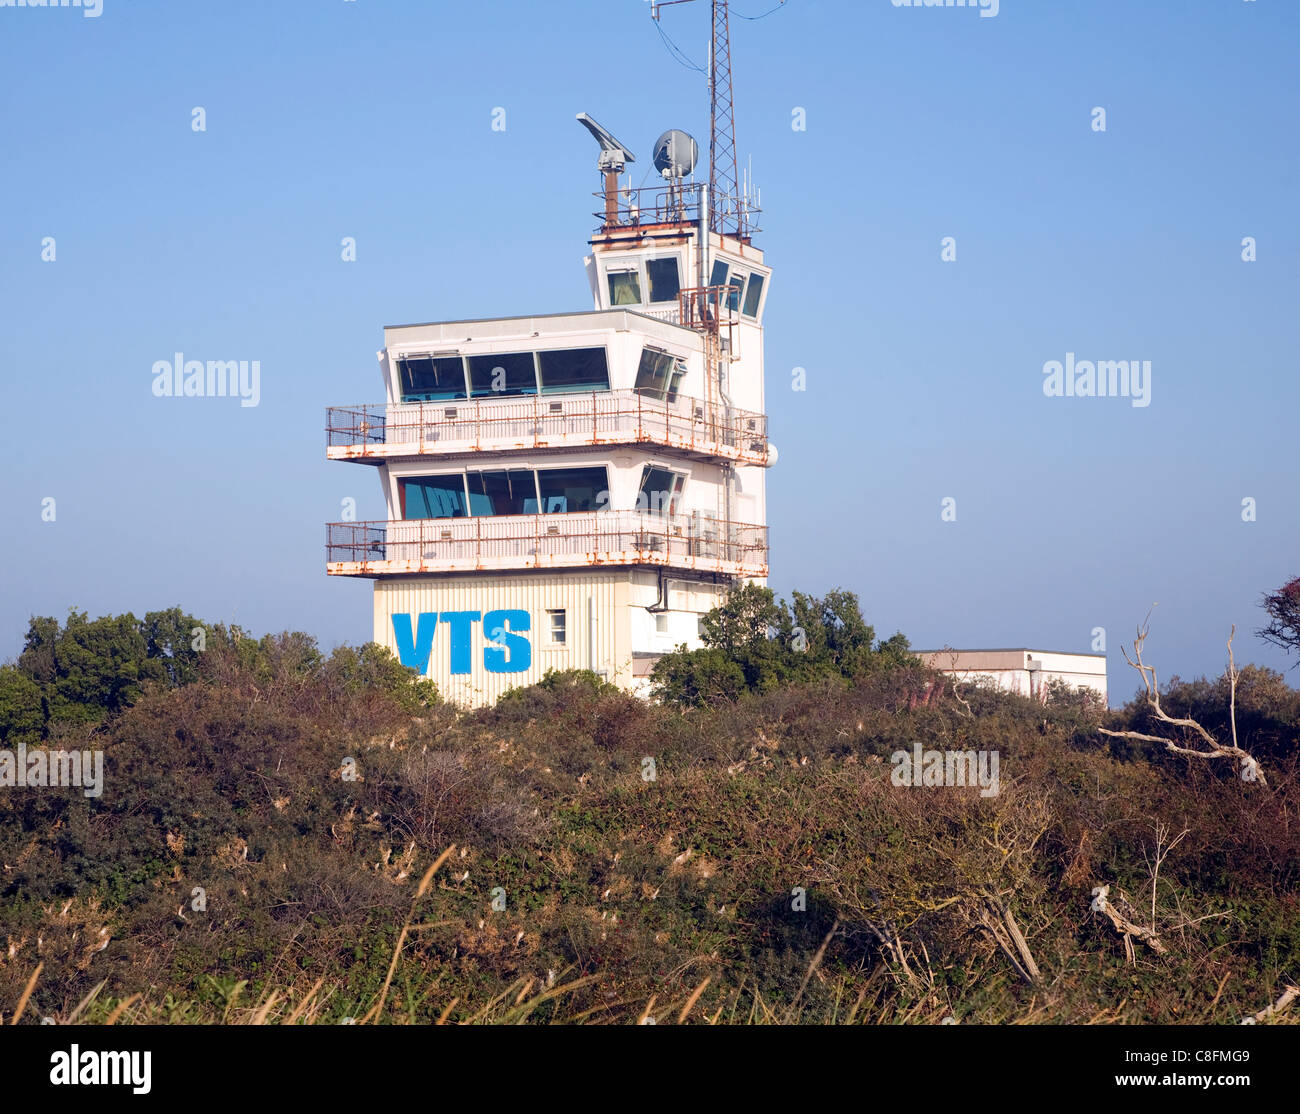 VTS Vessel Tracking Service Humber pilots building, Spurn Head, Yorkshire, England - Stock Image